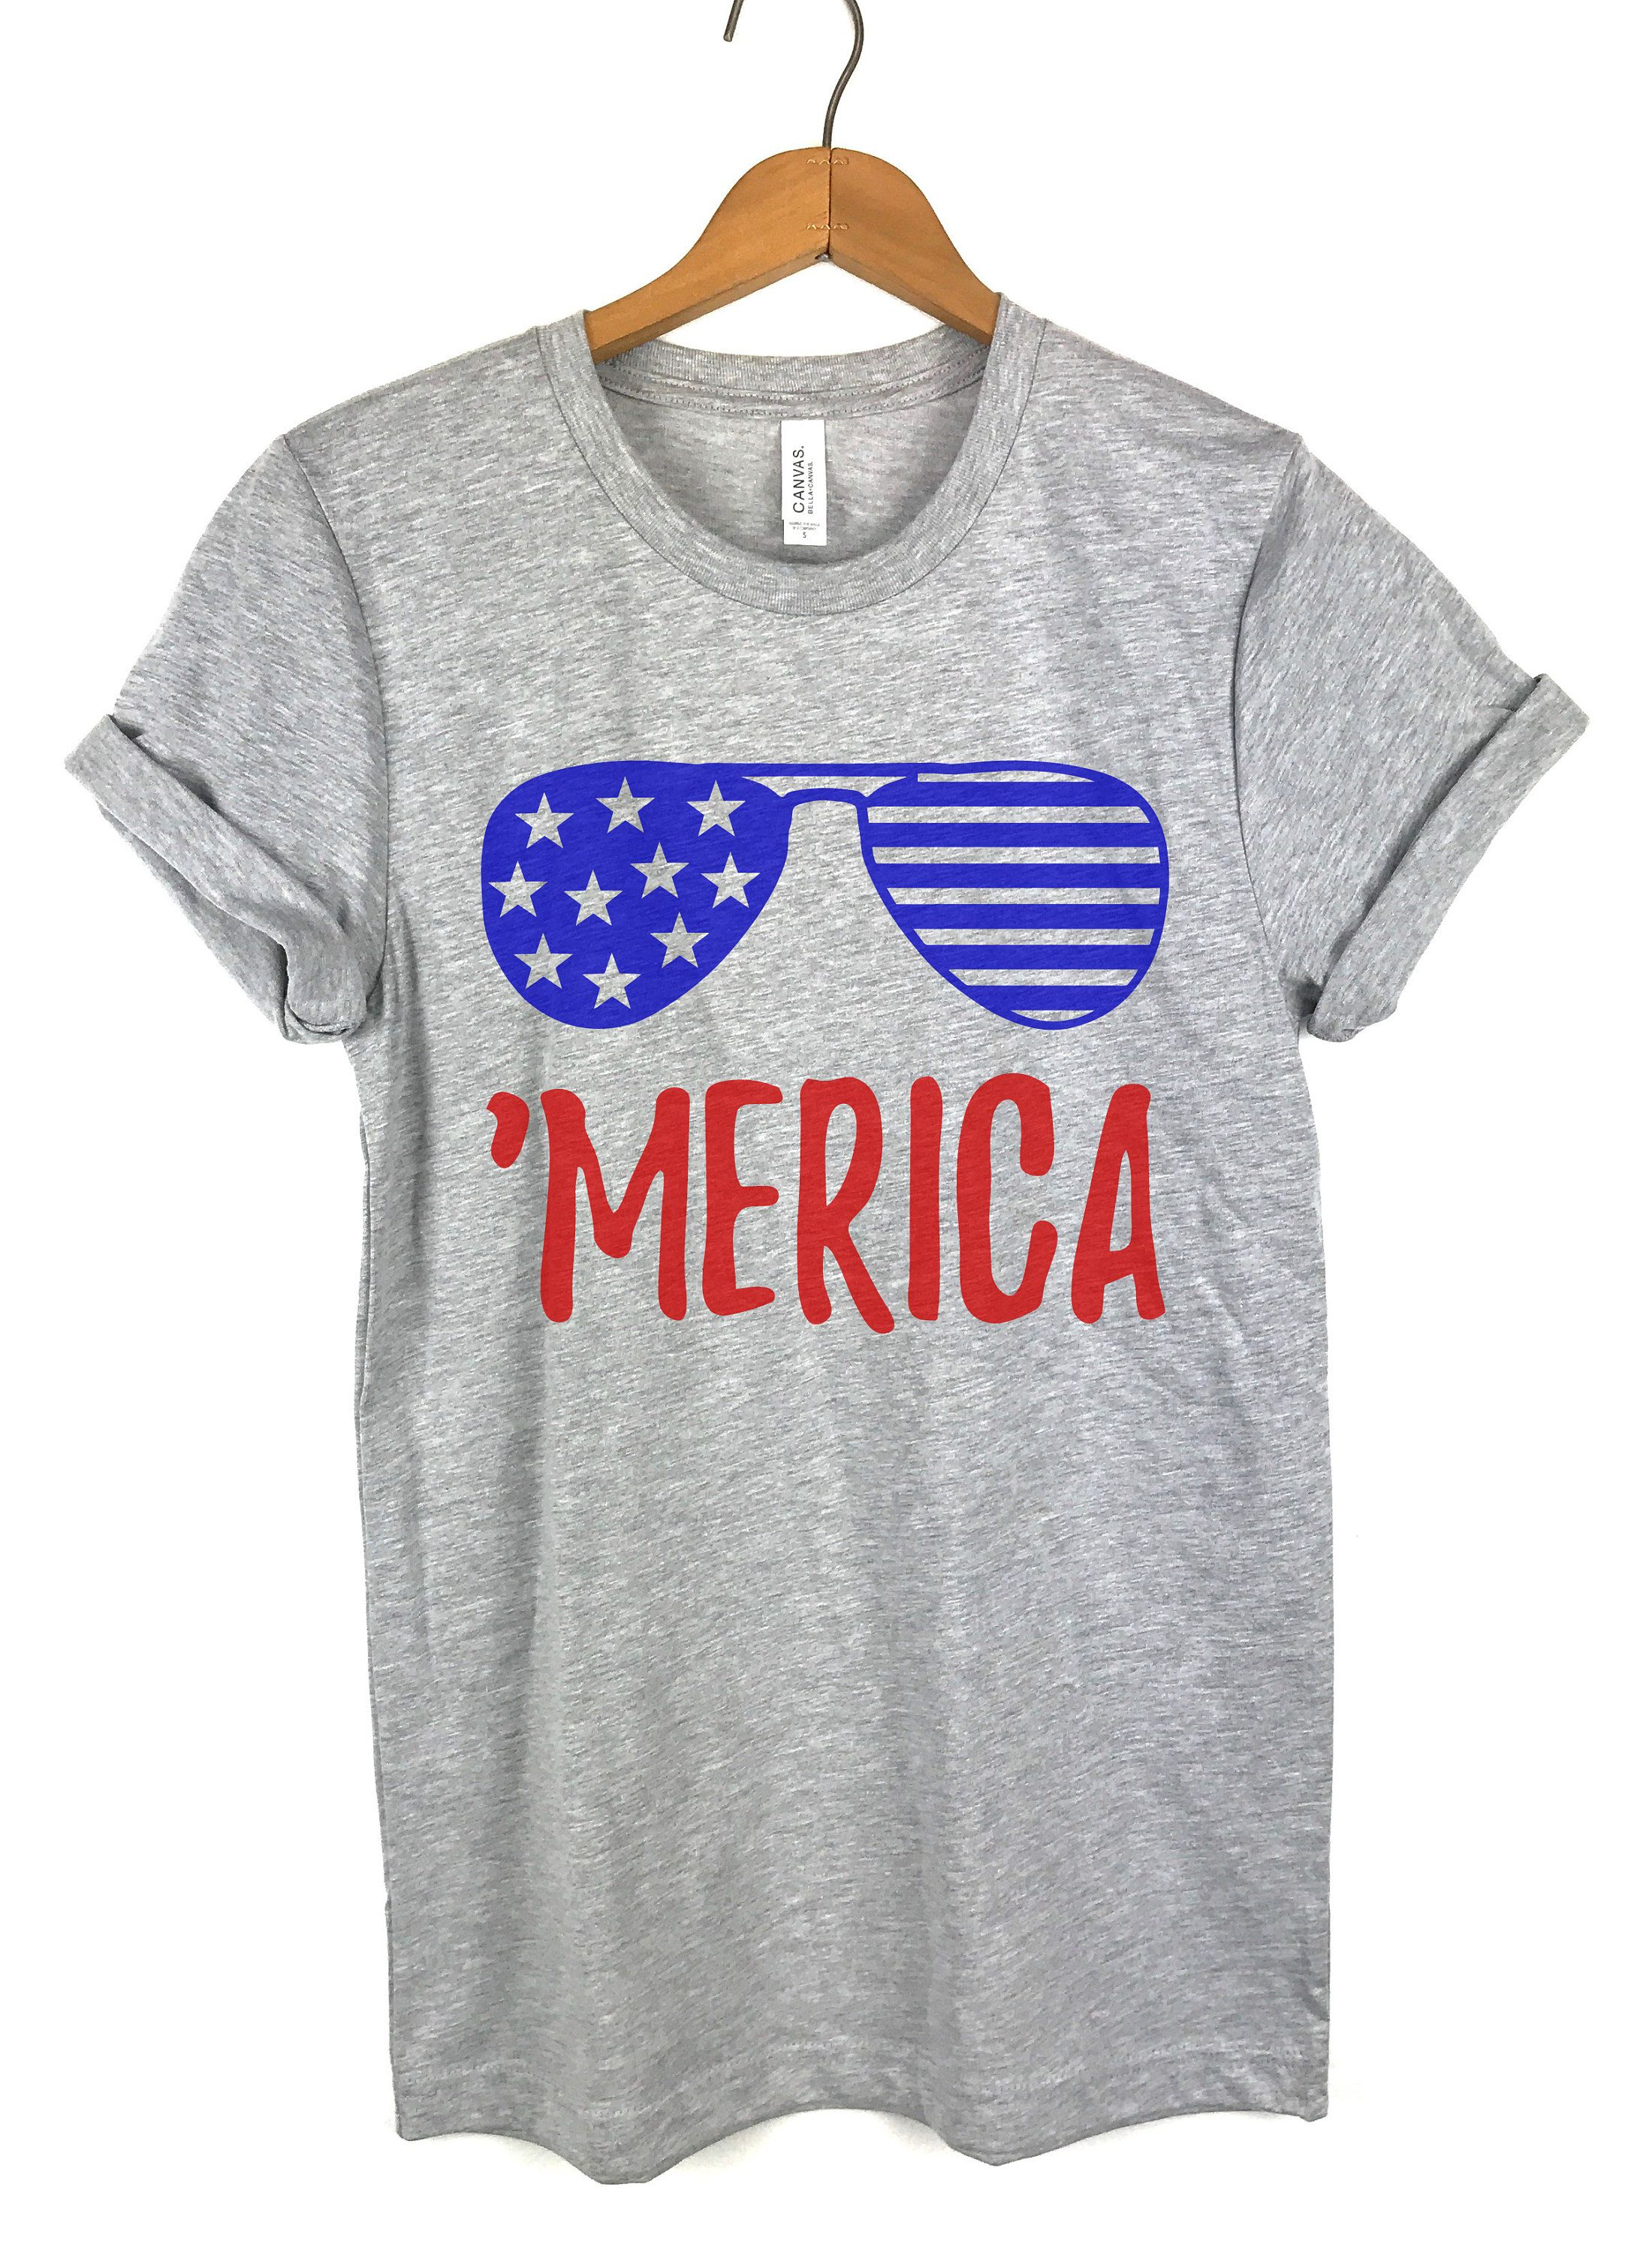 4e98202b July 4th · Merica Shirt · Usa Shirt · Excited to share the latest addition  to my #etsy shop: Merica Shirt, Merica